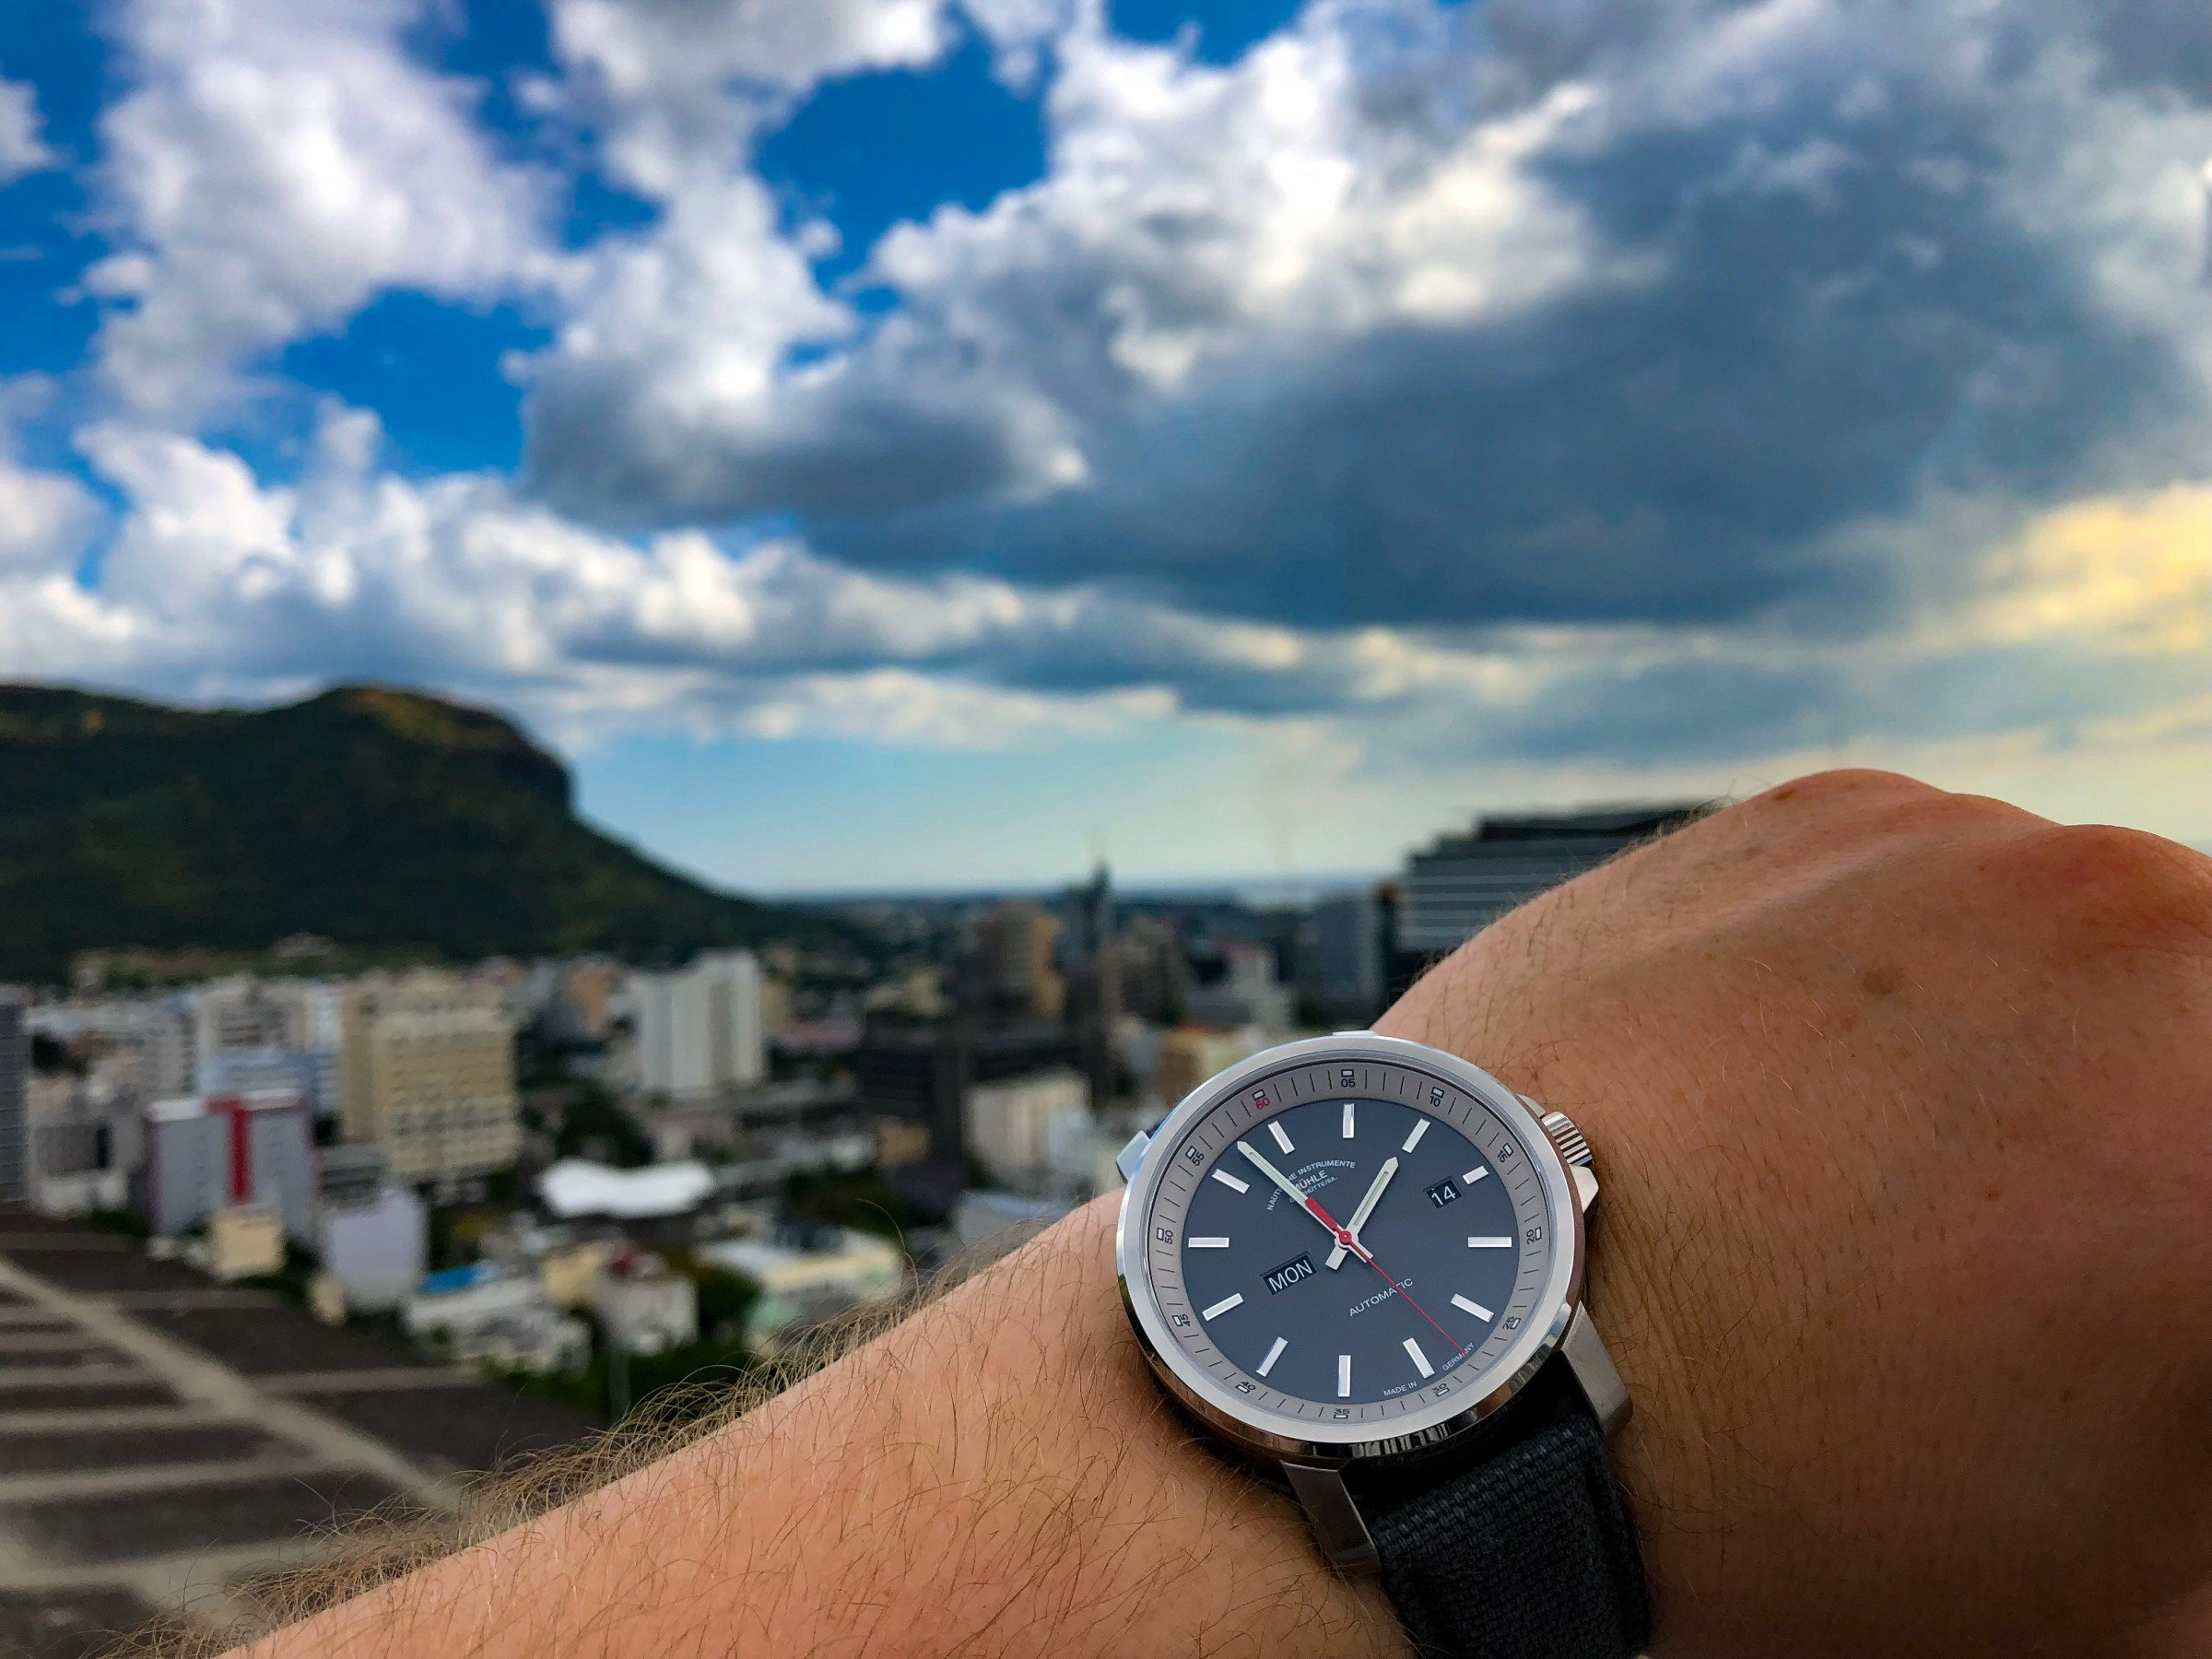 Mühle-Glashütte 29er Tag-Datum 2018 Port Louis